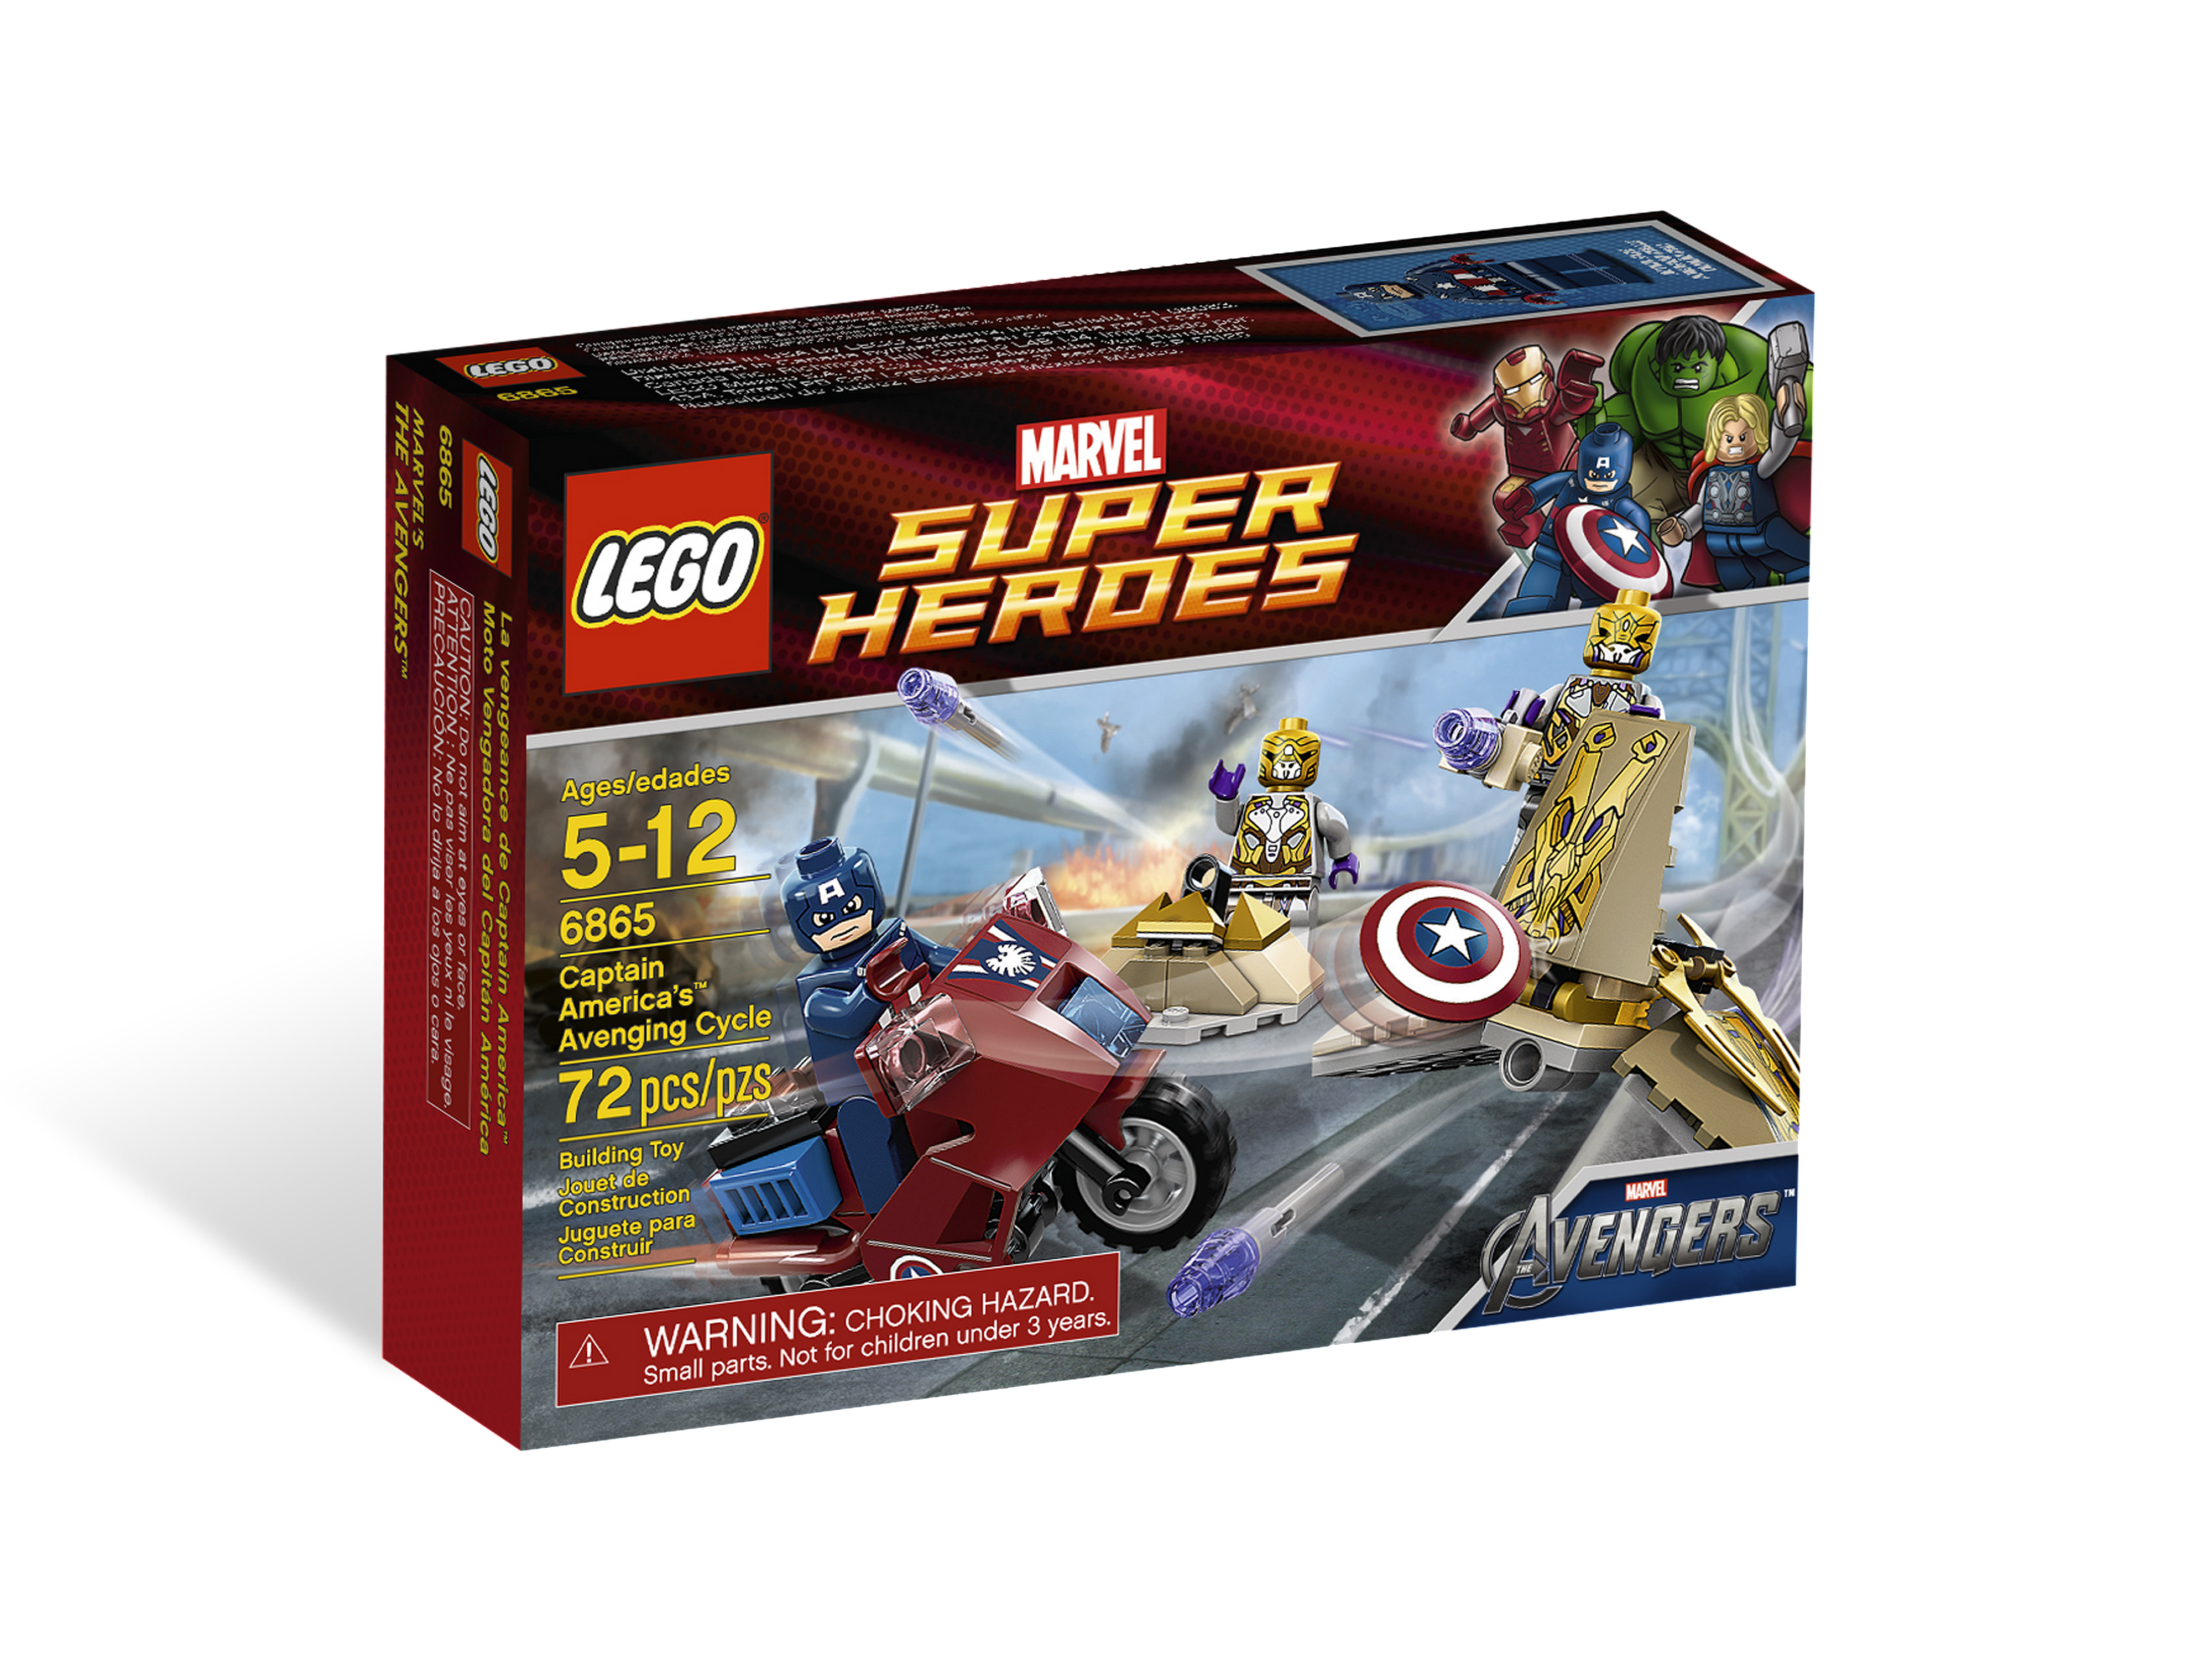 6865 captain america 39 s avenging cycle brickipedia the lego wiki - Lego capitaine america ...